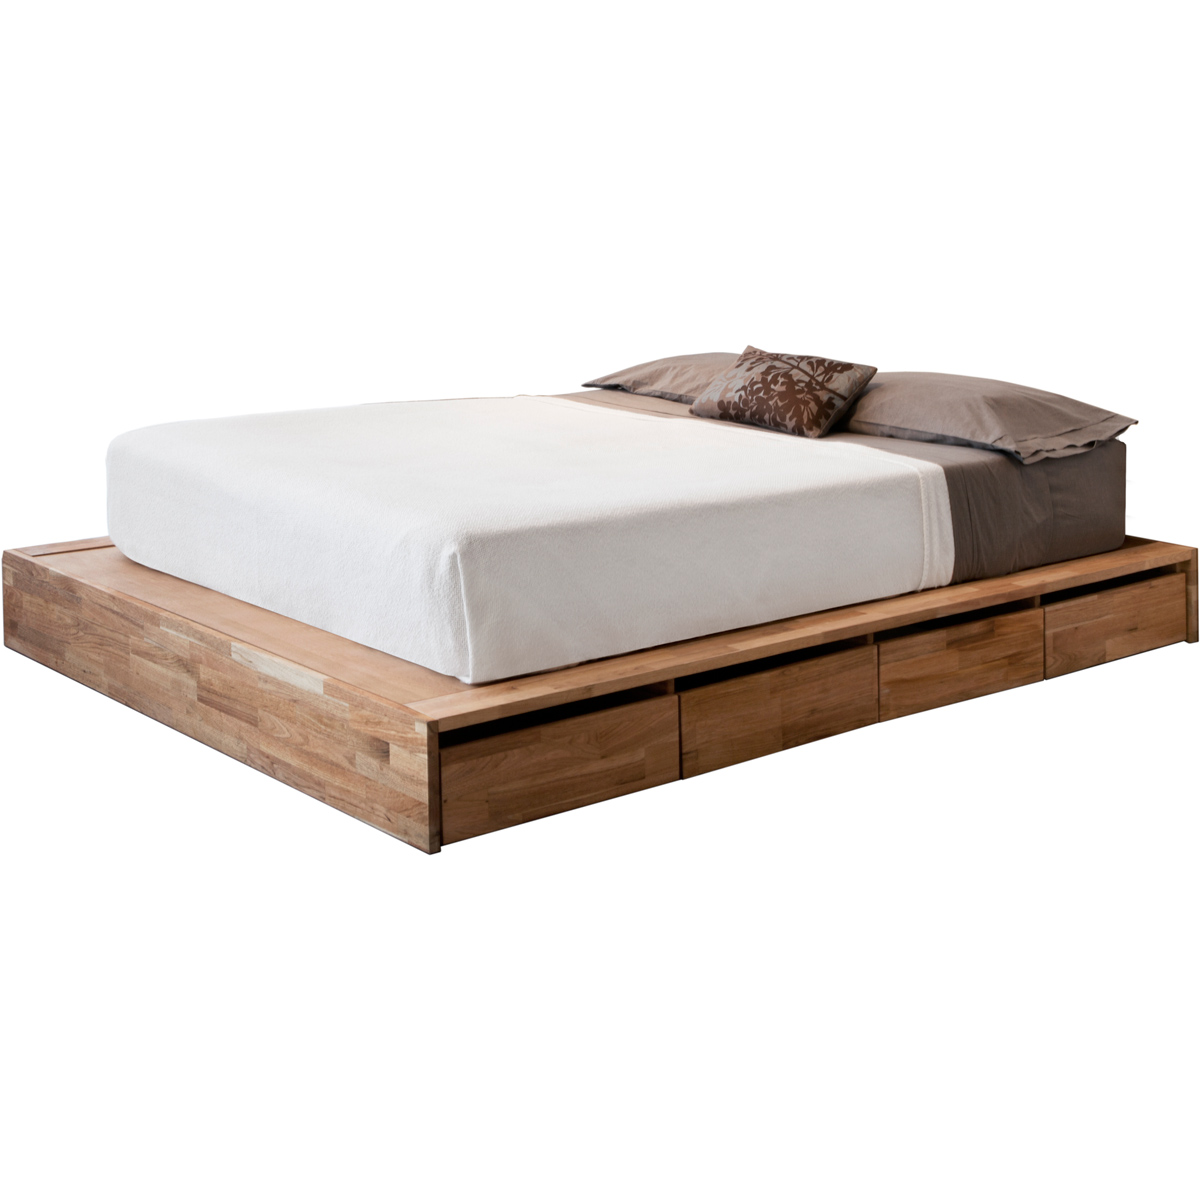 The comfortable and beautiful designs of ikea bed frame for Platform bed with drawers ikea